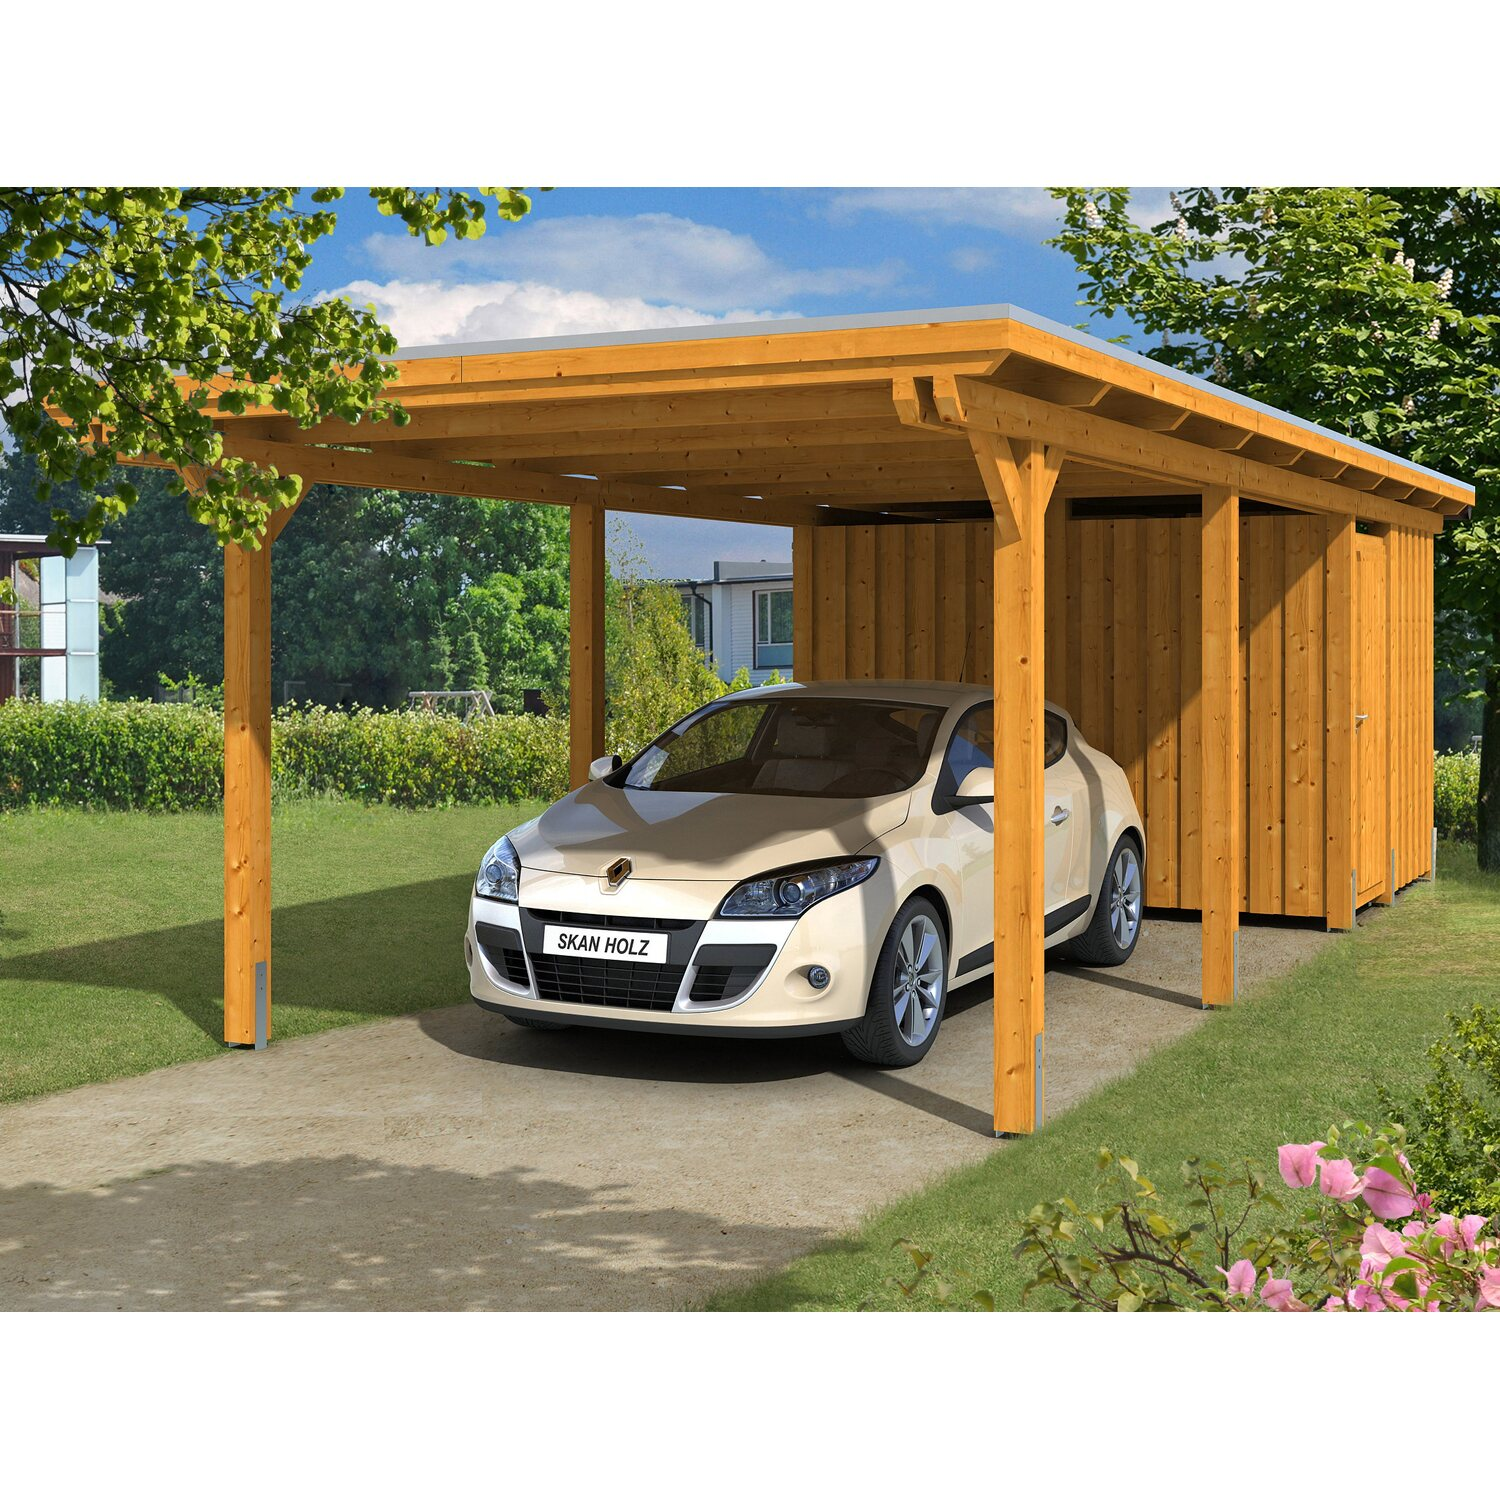 skan holz carport emsland 354 cm x 846 cm mit abstellraum eiche hell kaufen bei obi. Black Bedroom Furniture Sets. Home Design Ideas